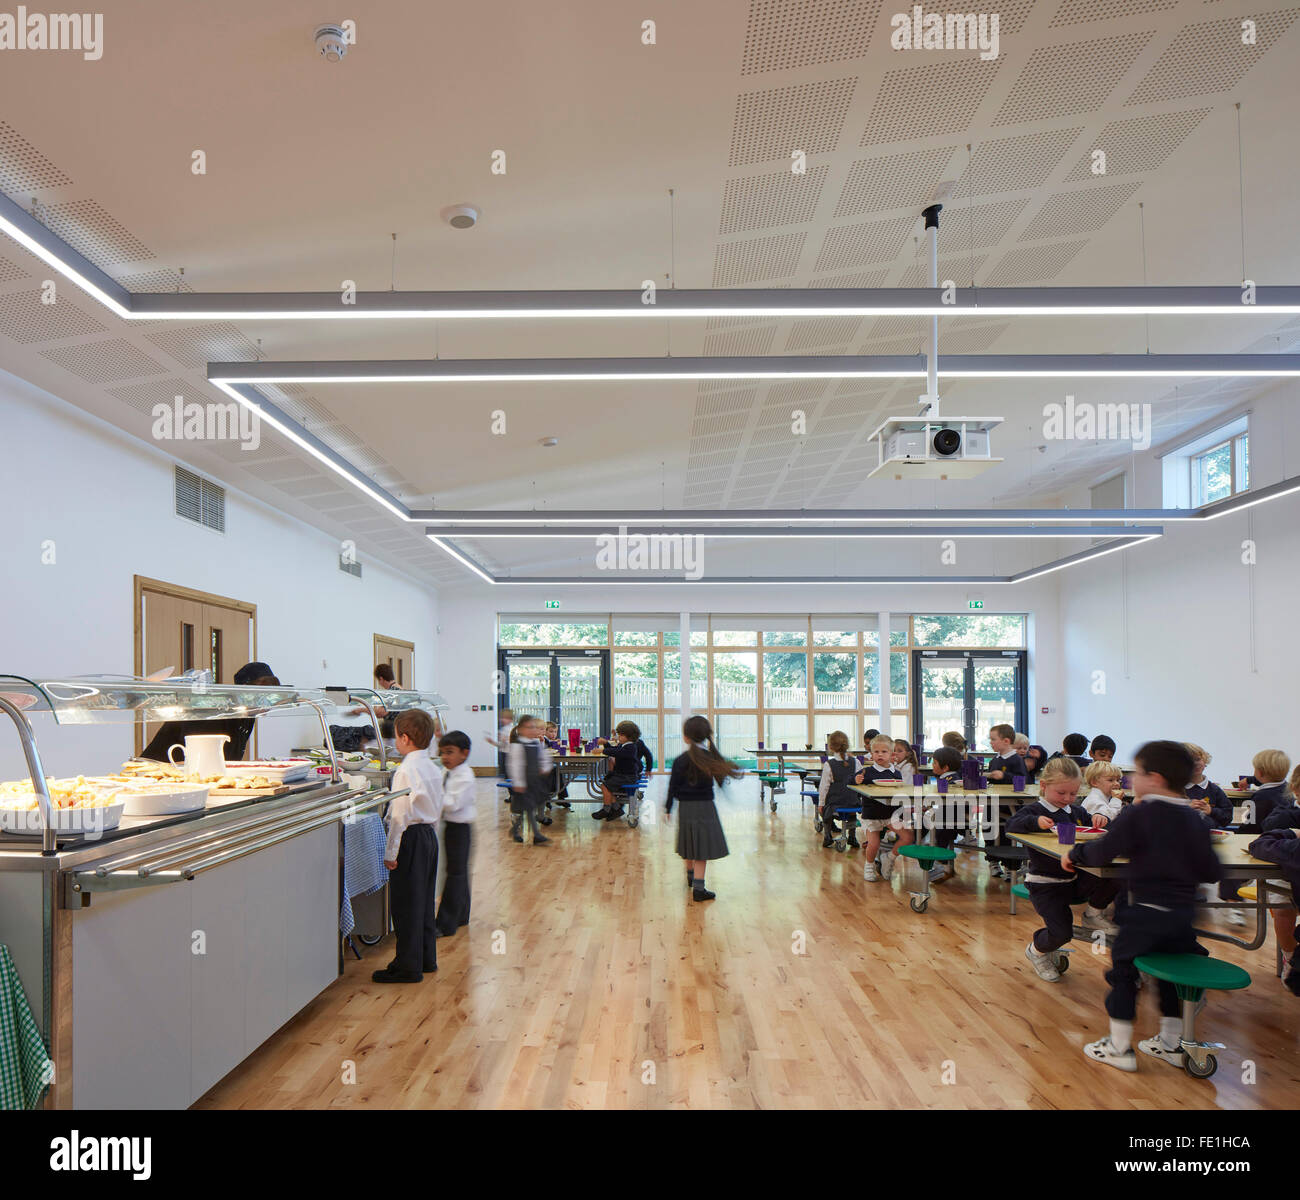 Children at lunch in multi-functional hall. Willow Lodge, The King's Infant School, Chester, United Kingdom. - Stock Image